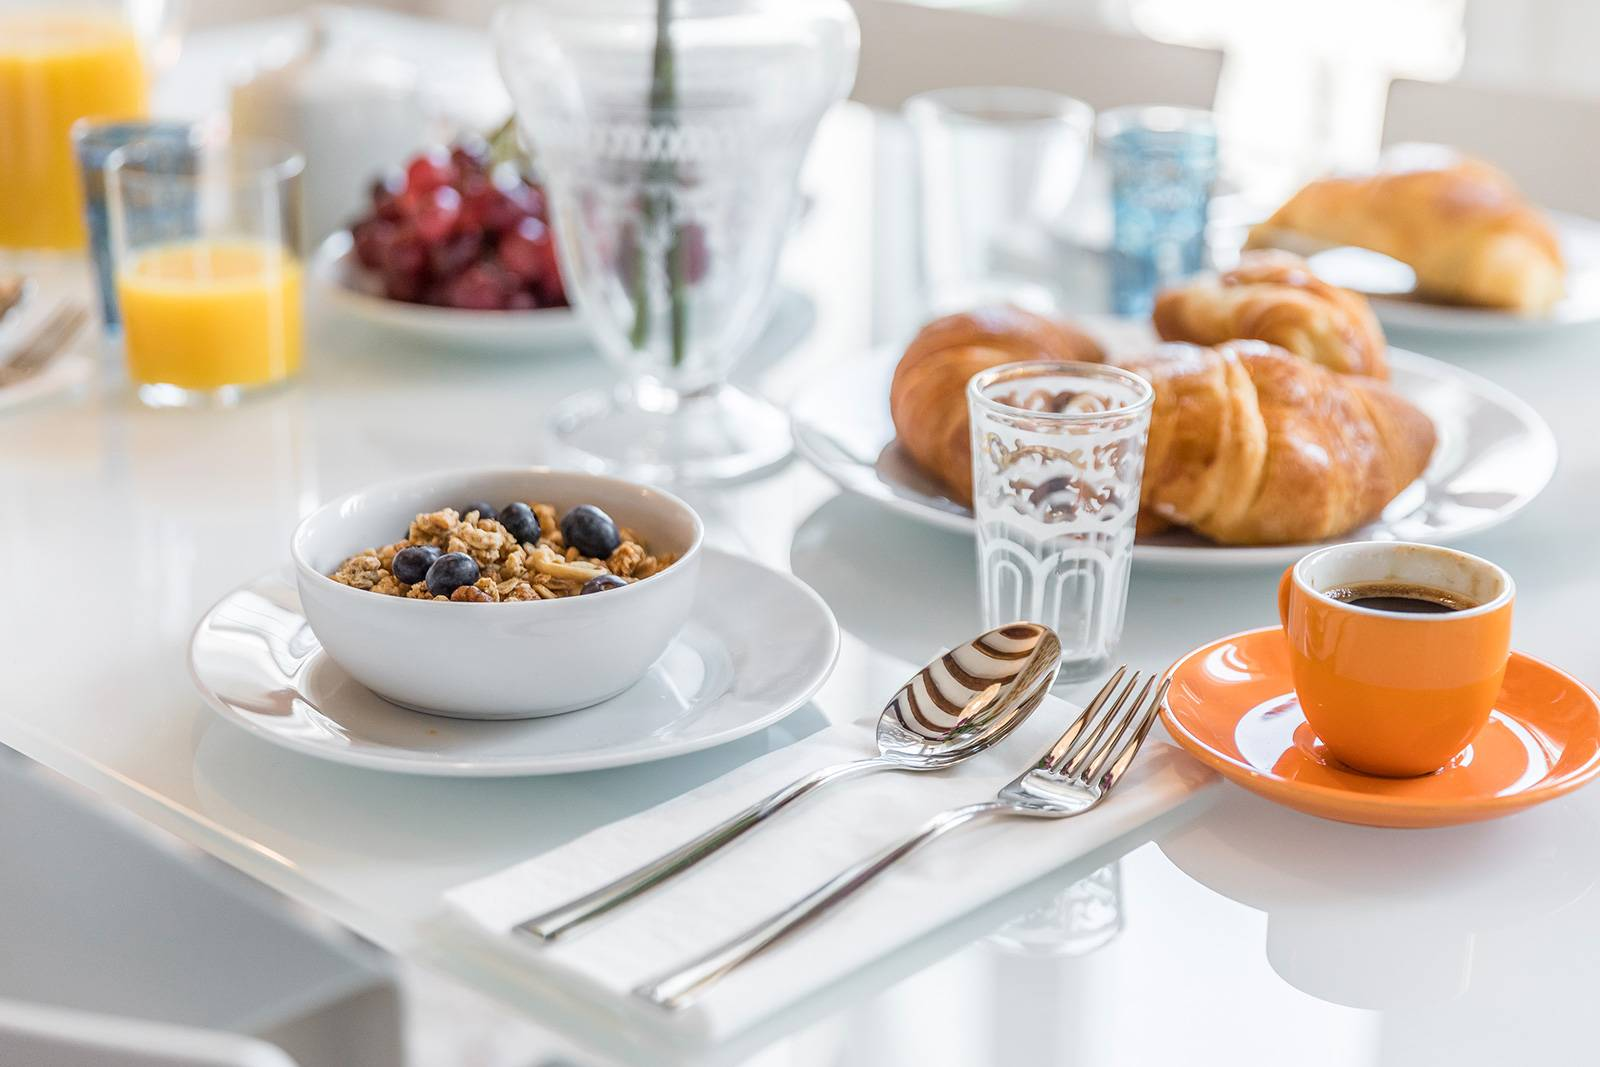 enjoy a good breakfast with your friends and family before exploring Venice!